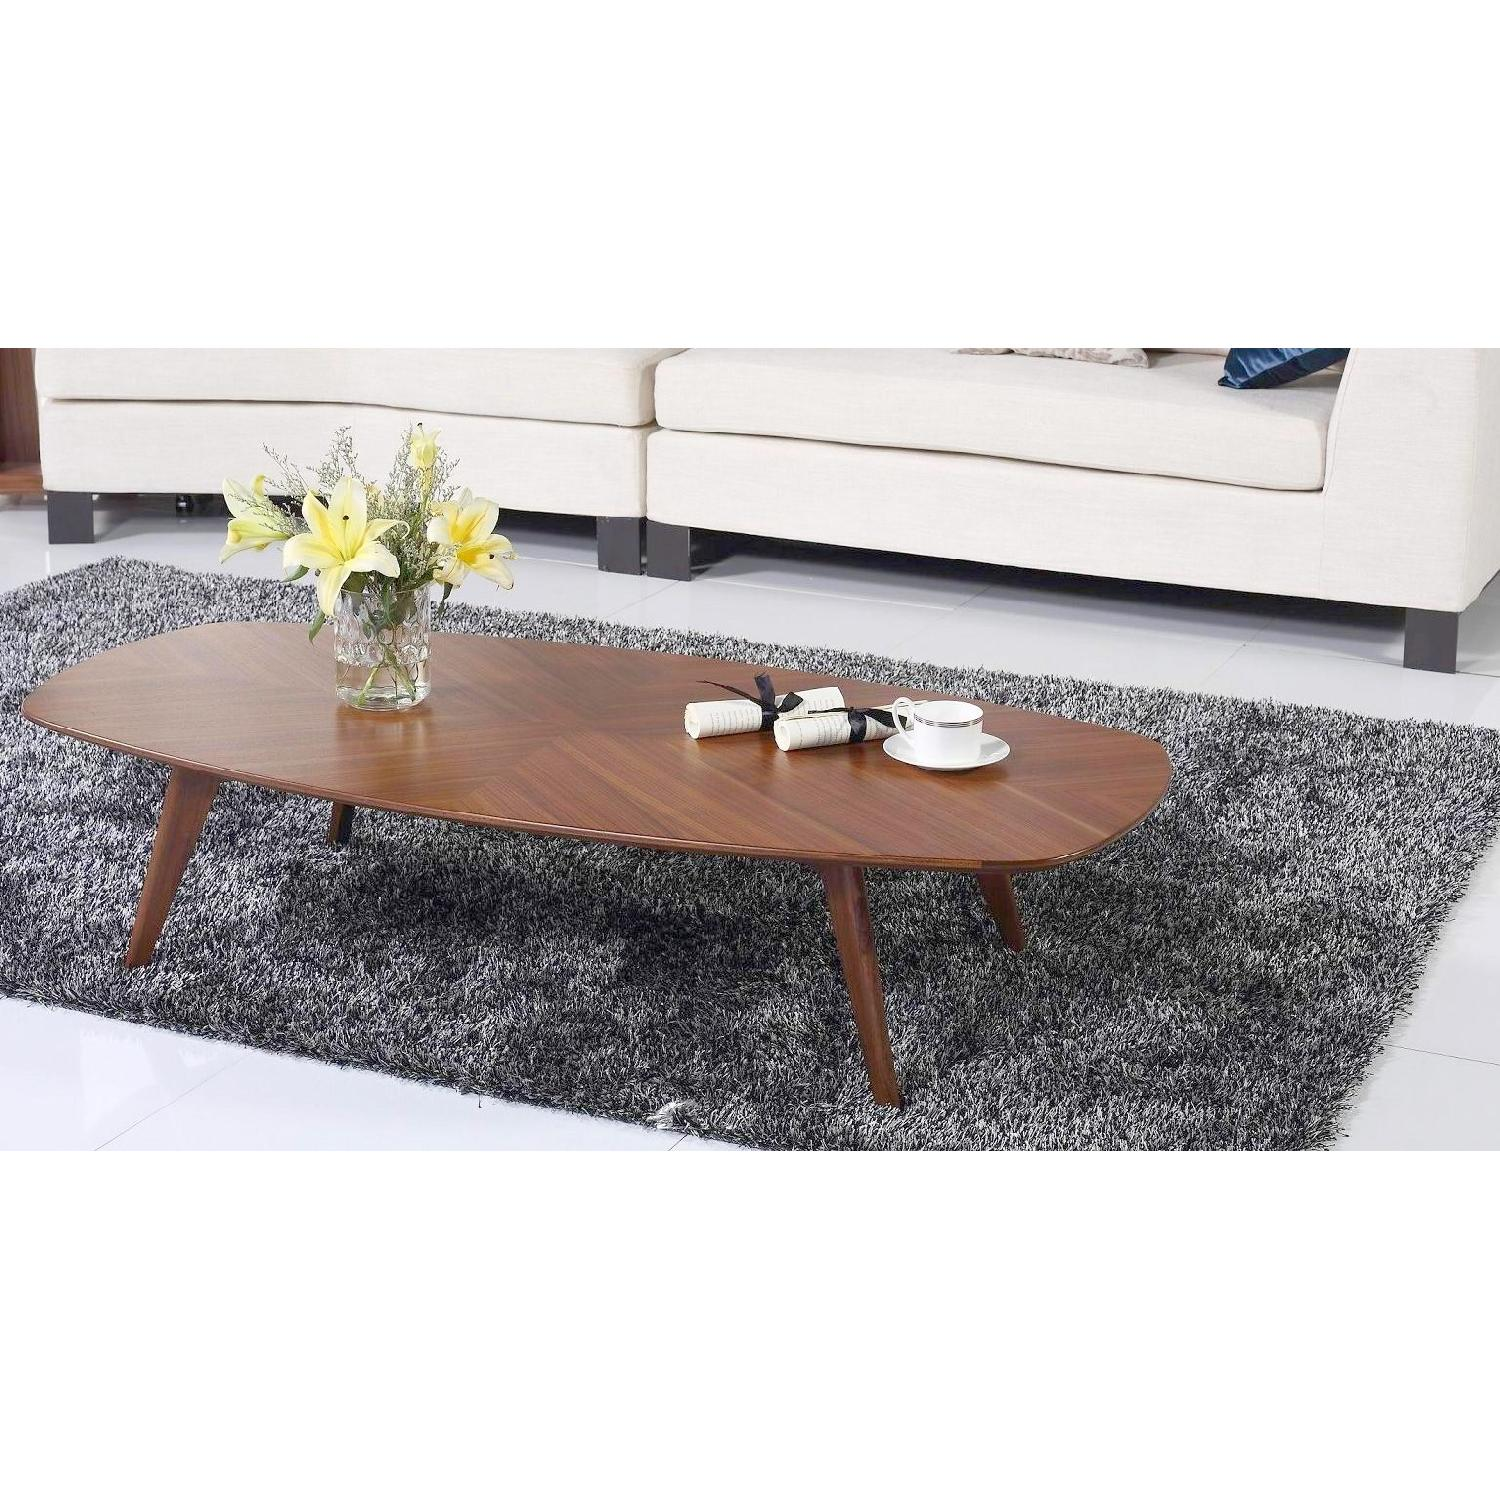 Mid-Century Style Cocktail Table in Walnut Finish w/ Crisscr-2